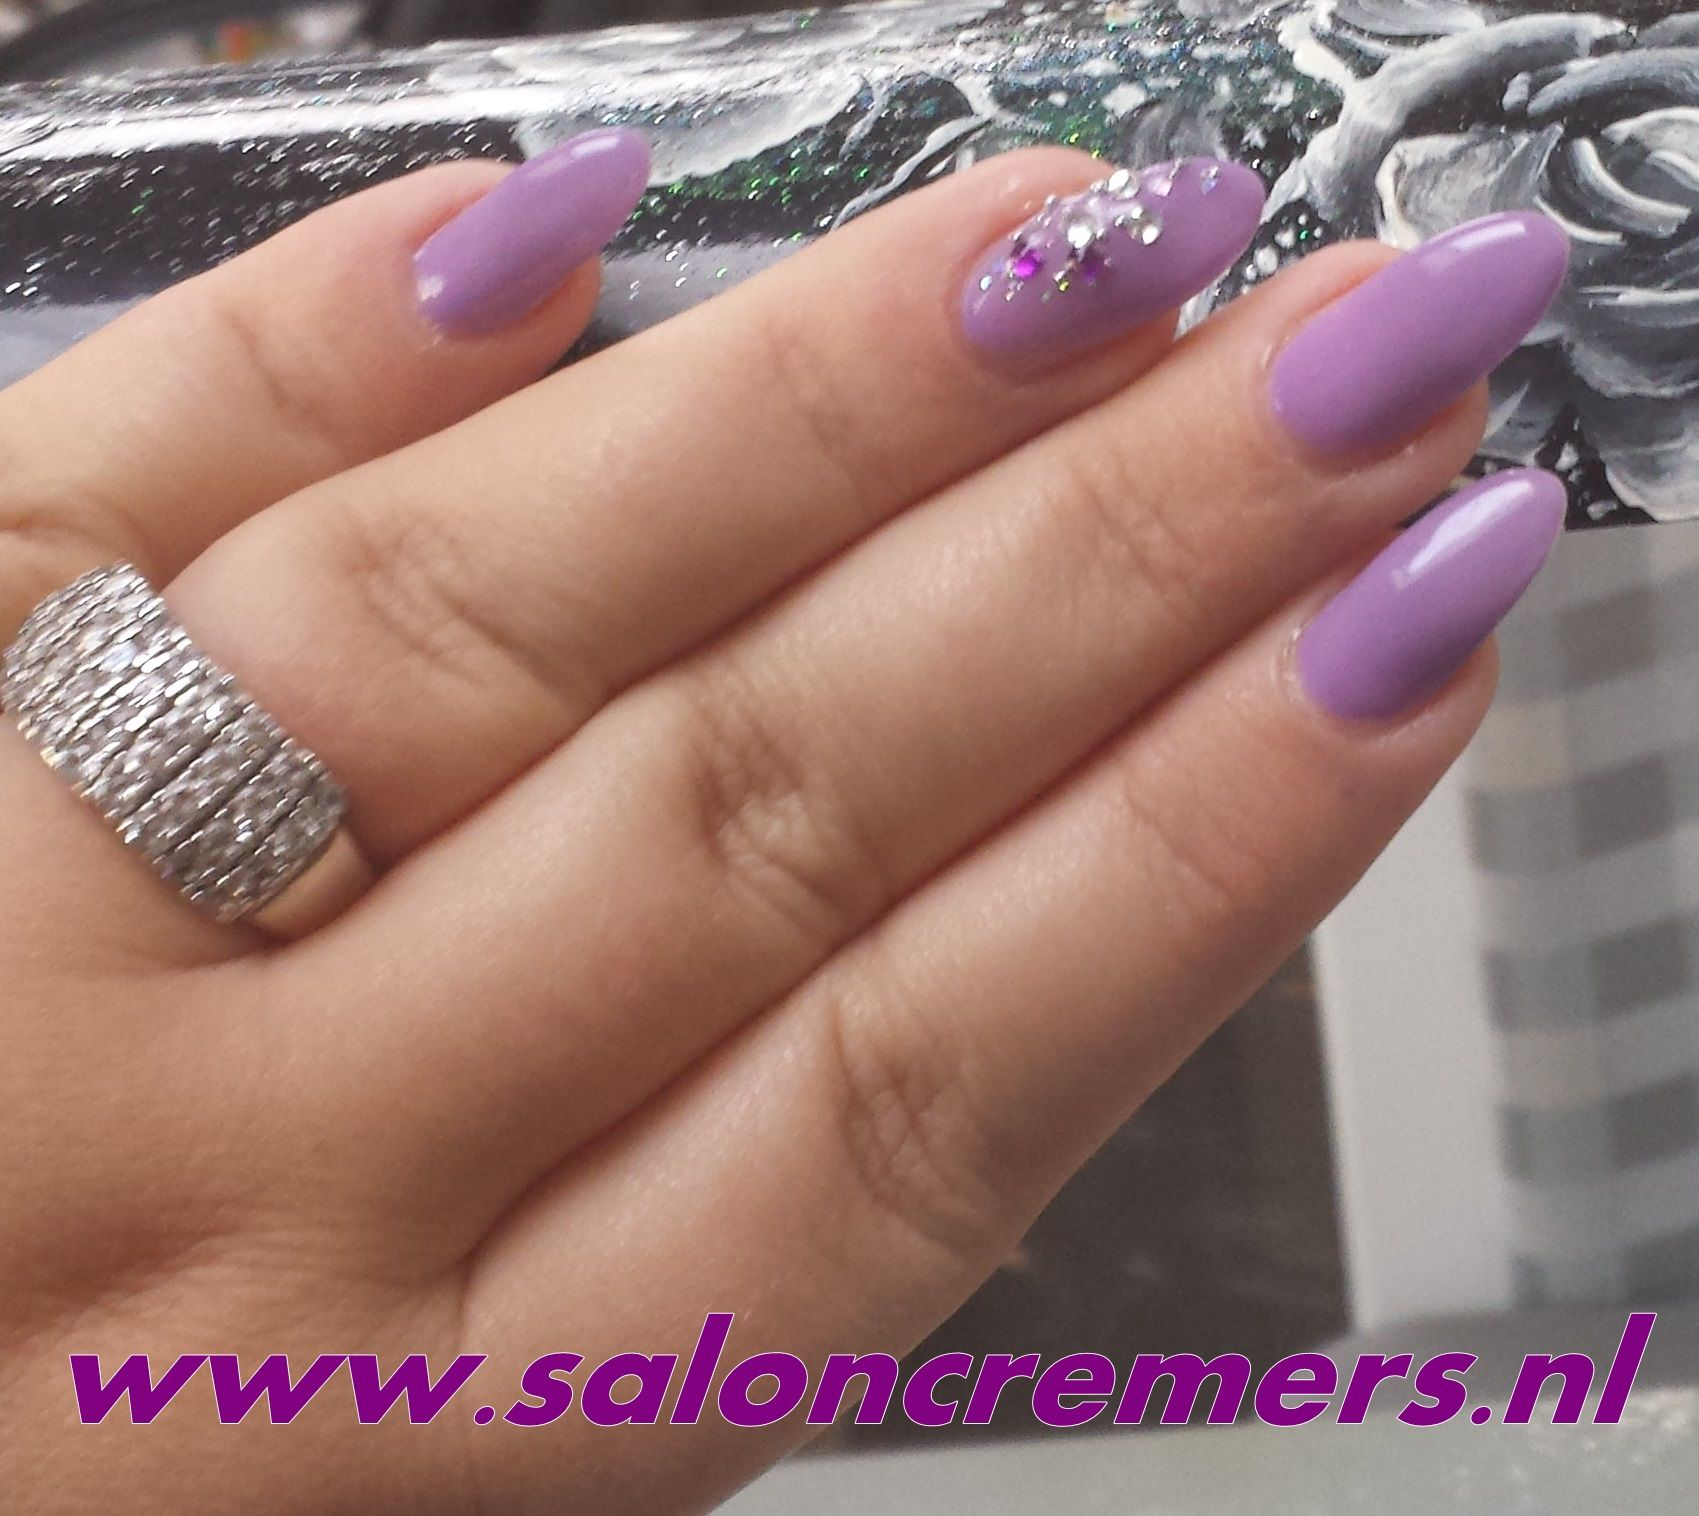 About baby boomer nail art tutorial by nded on pinterest nail art - Almond Shape Lila Nails With Strass Nail Art